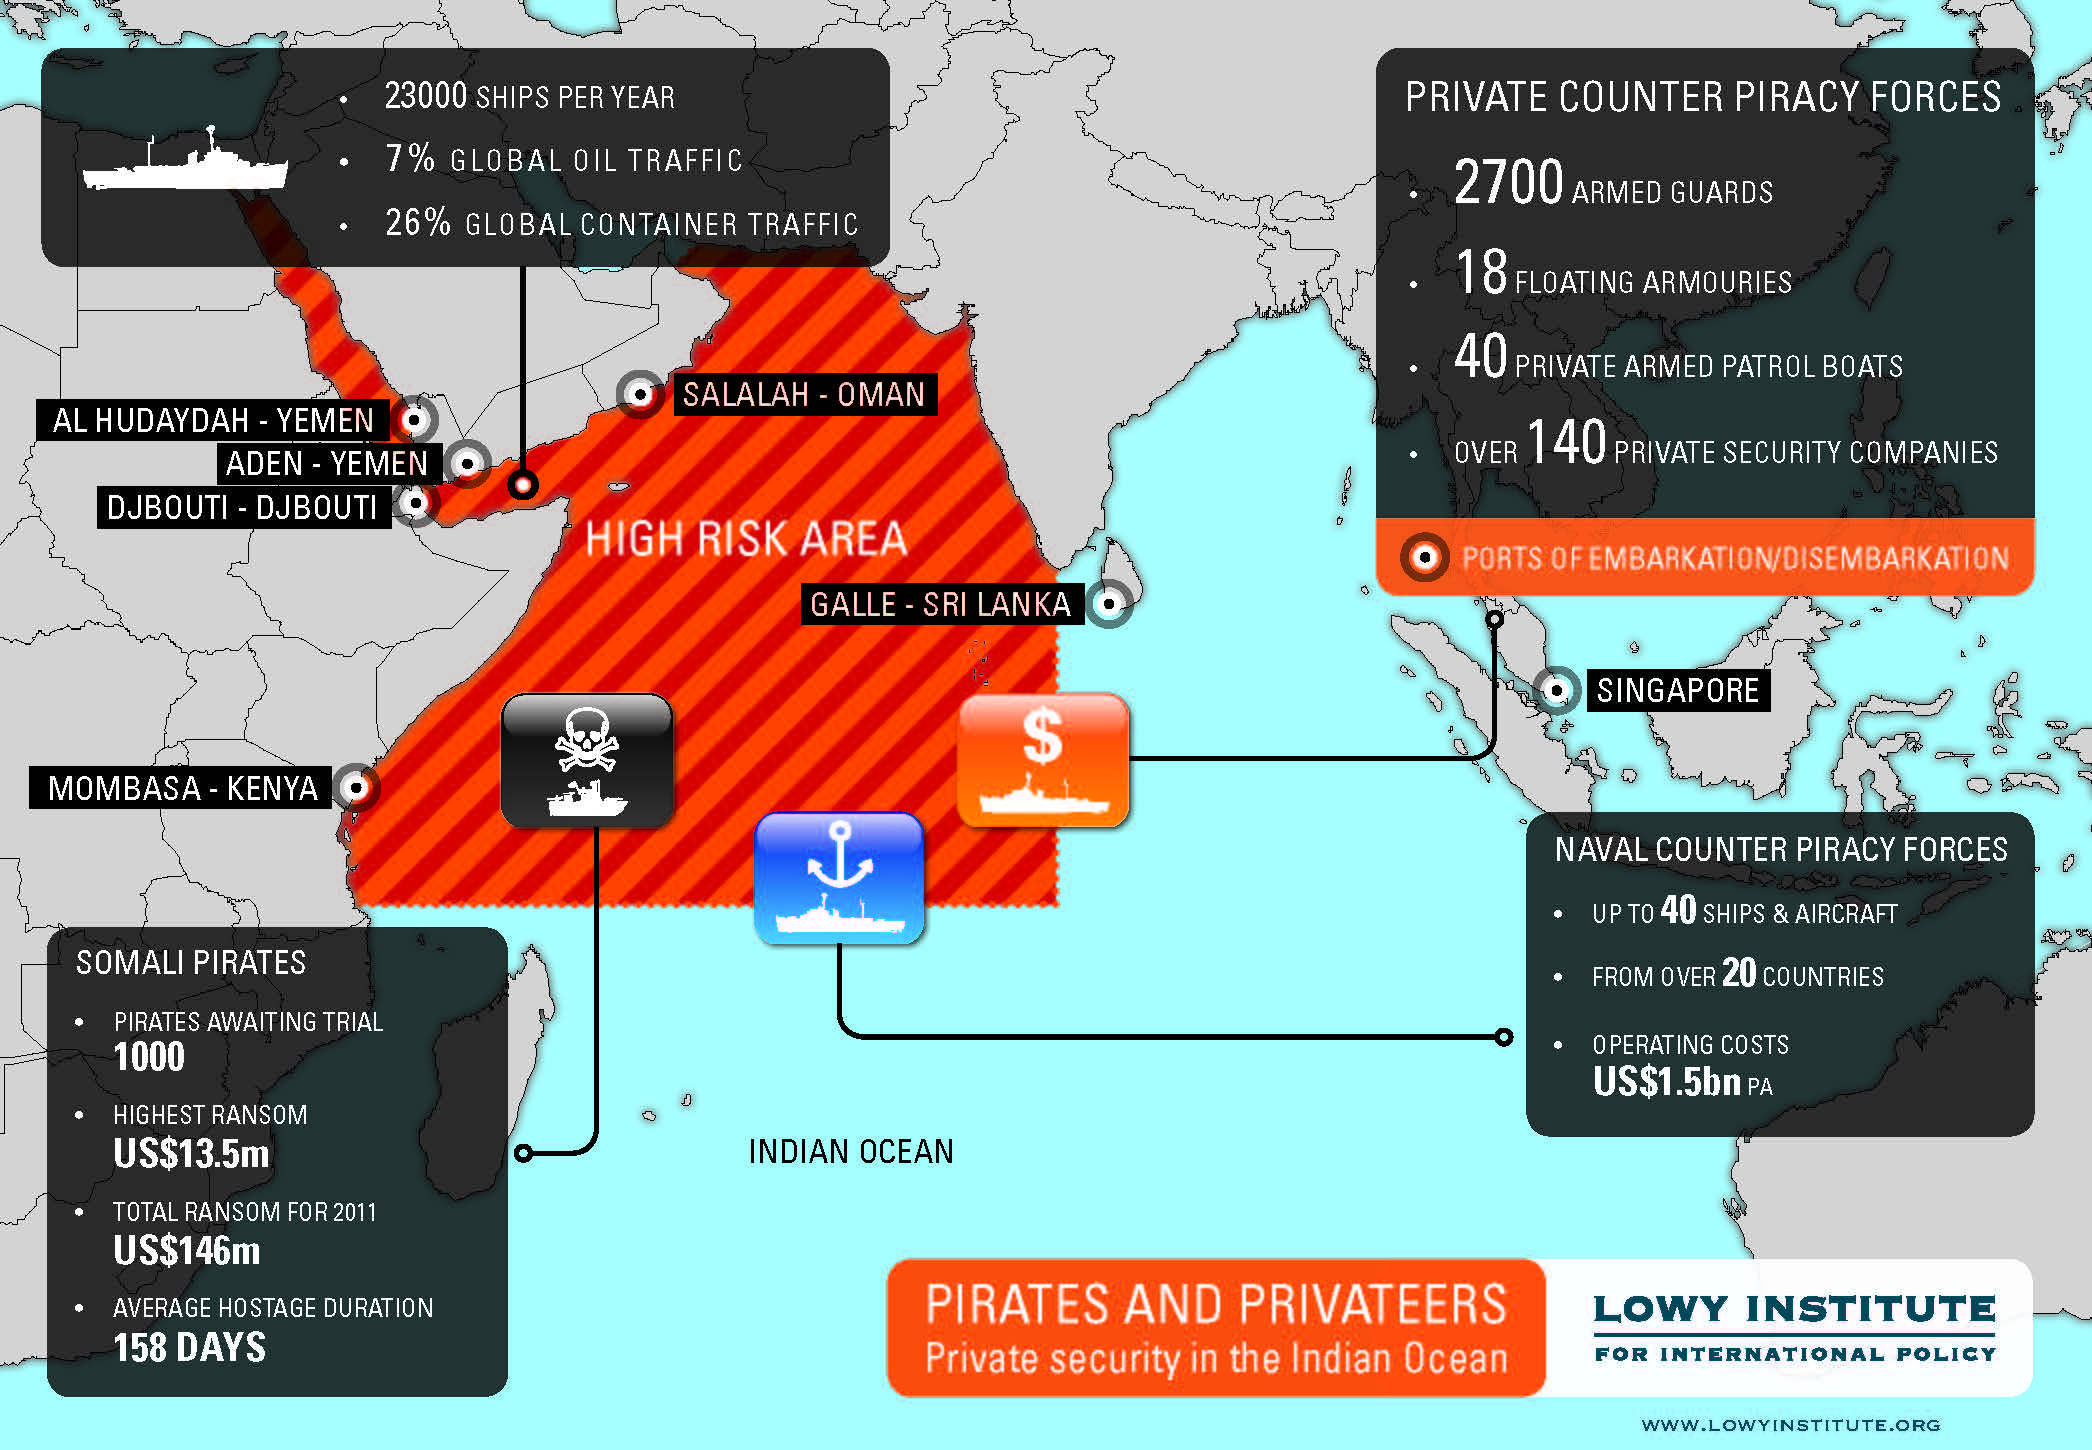 Pirates and privateers: managing the Indian Ocean private security